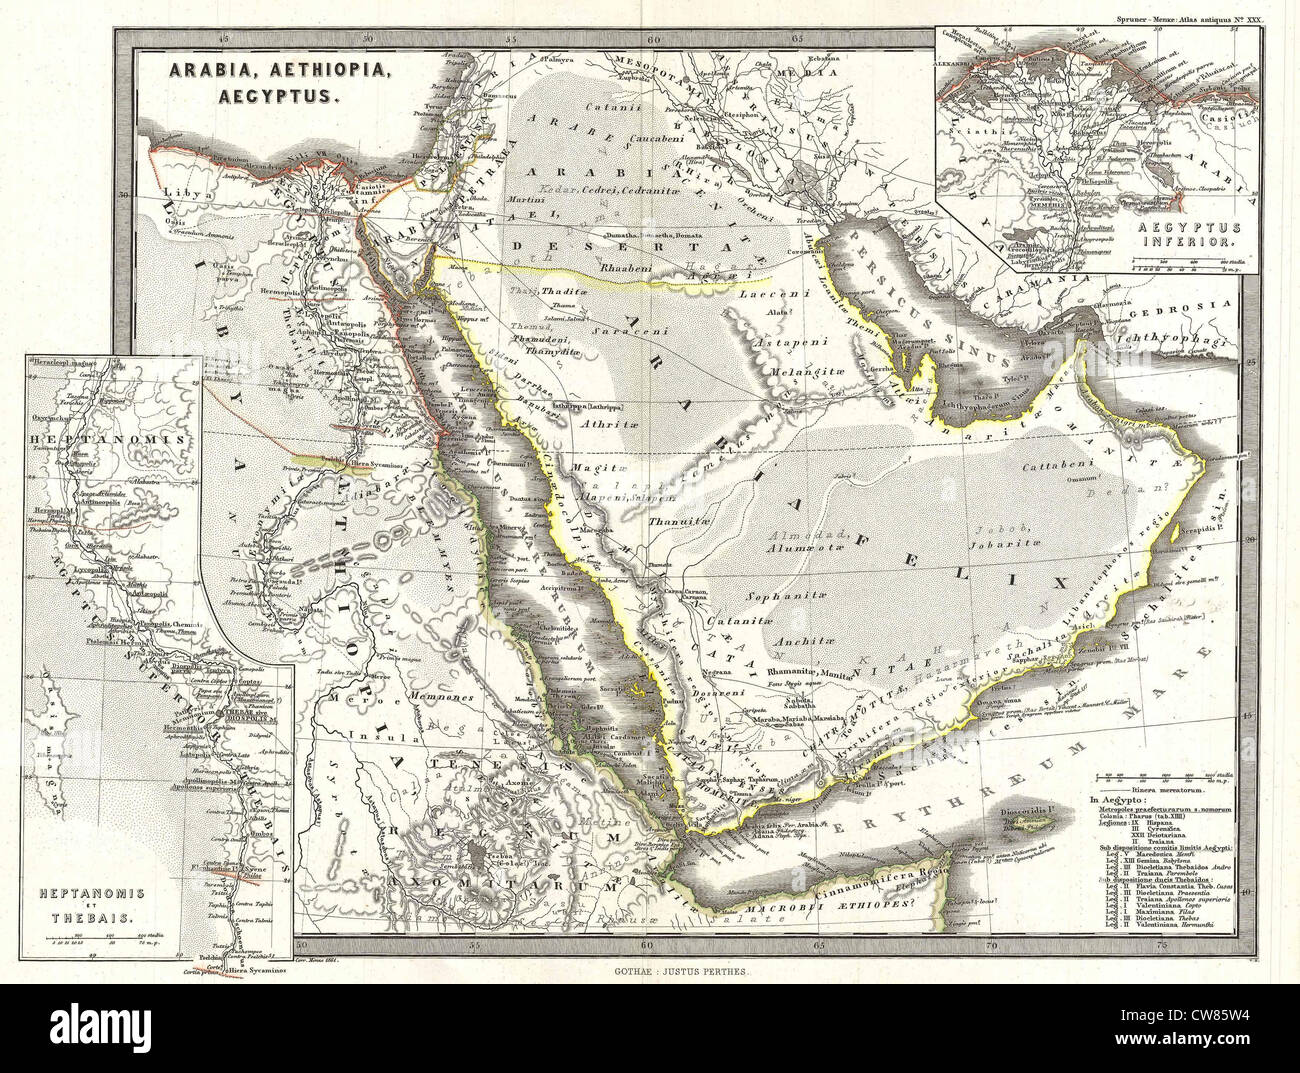 1865 Spruner Map Of Arabia And Egypt In Antiquity Photo – Map of Arabia